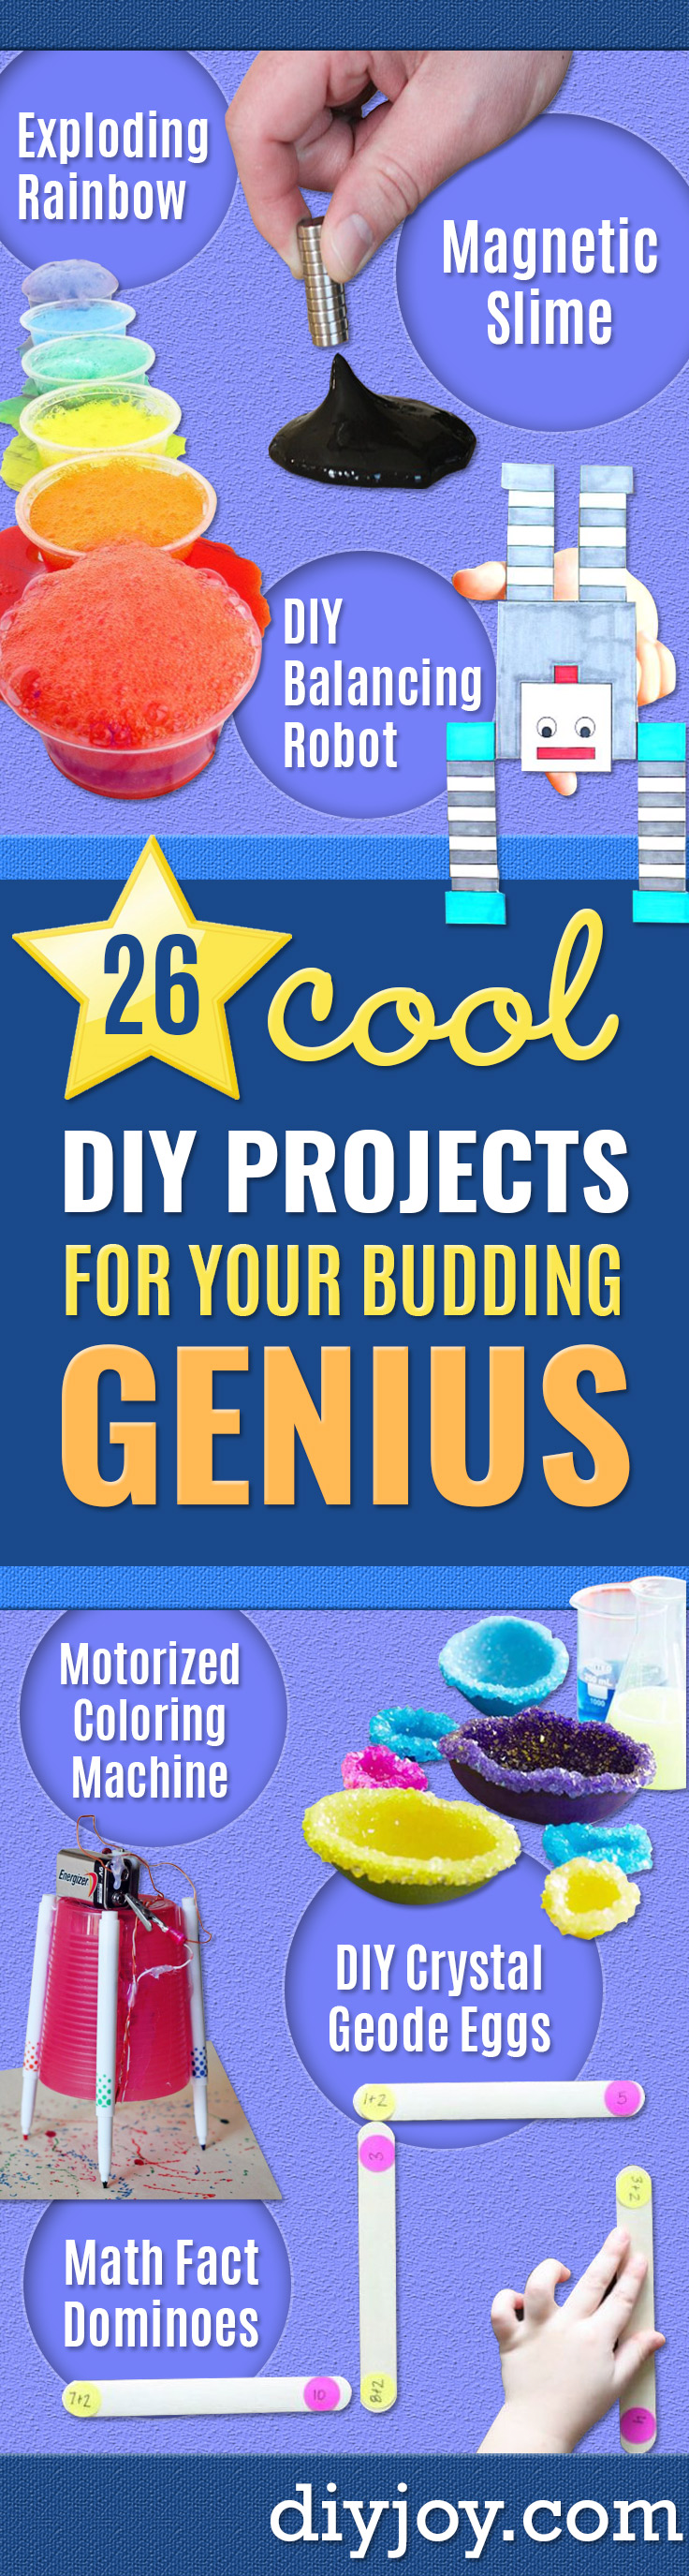 DIY Stem and Science Ideas for Kids and Teens - Fun and Easy Do It Yourself Projects and Crafts Using Math, Electronics, Engineering Concepts and Basic Building Skills - Creatve and Cool Project Tutorials For Kids To Make At Home This Summer - Boys, Girls and Teenagers Have Fun Making Room Decor, Experiments and Playtime STEM Fun http://diyjoy.com/diy-stem-science-projects